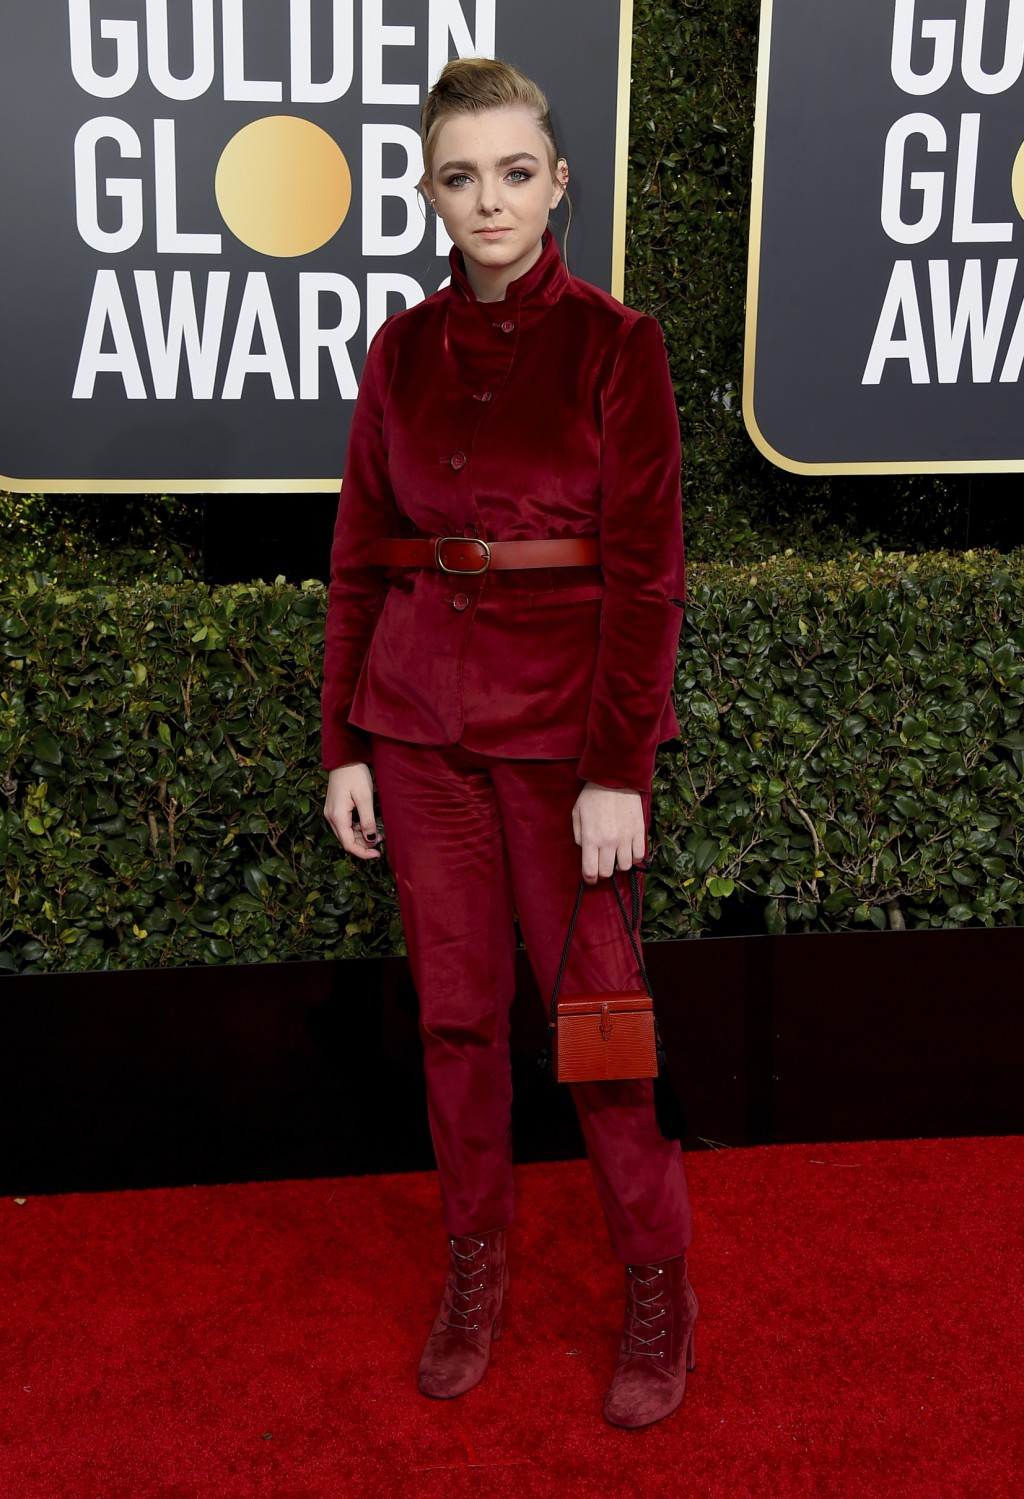 Elsie Fisher arrives at the 76th annual Golden Globe Awards at the Beverly Hilton Hotel on Sunday, Jan. 6, 2019, in Beverly Hills, Calif. (Photo by Jo